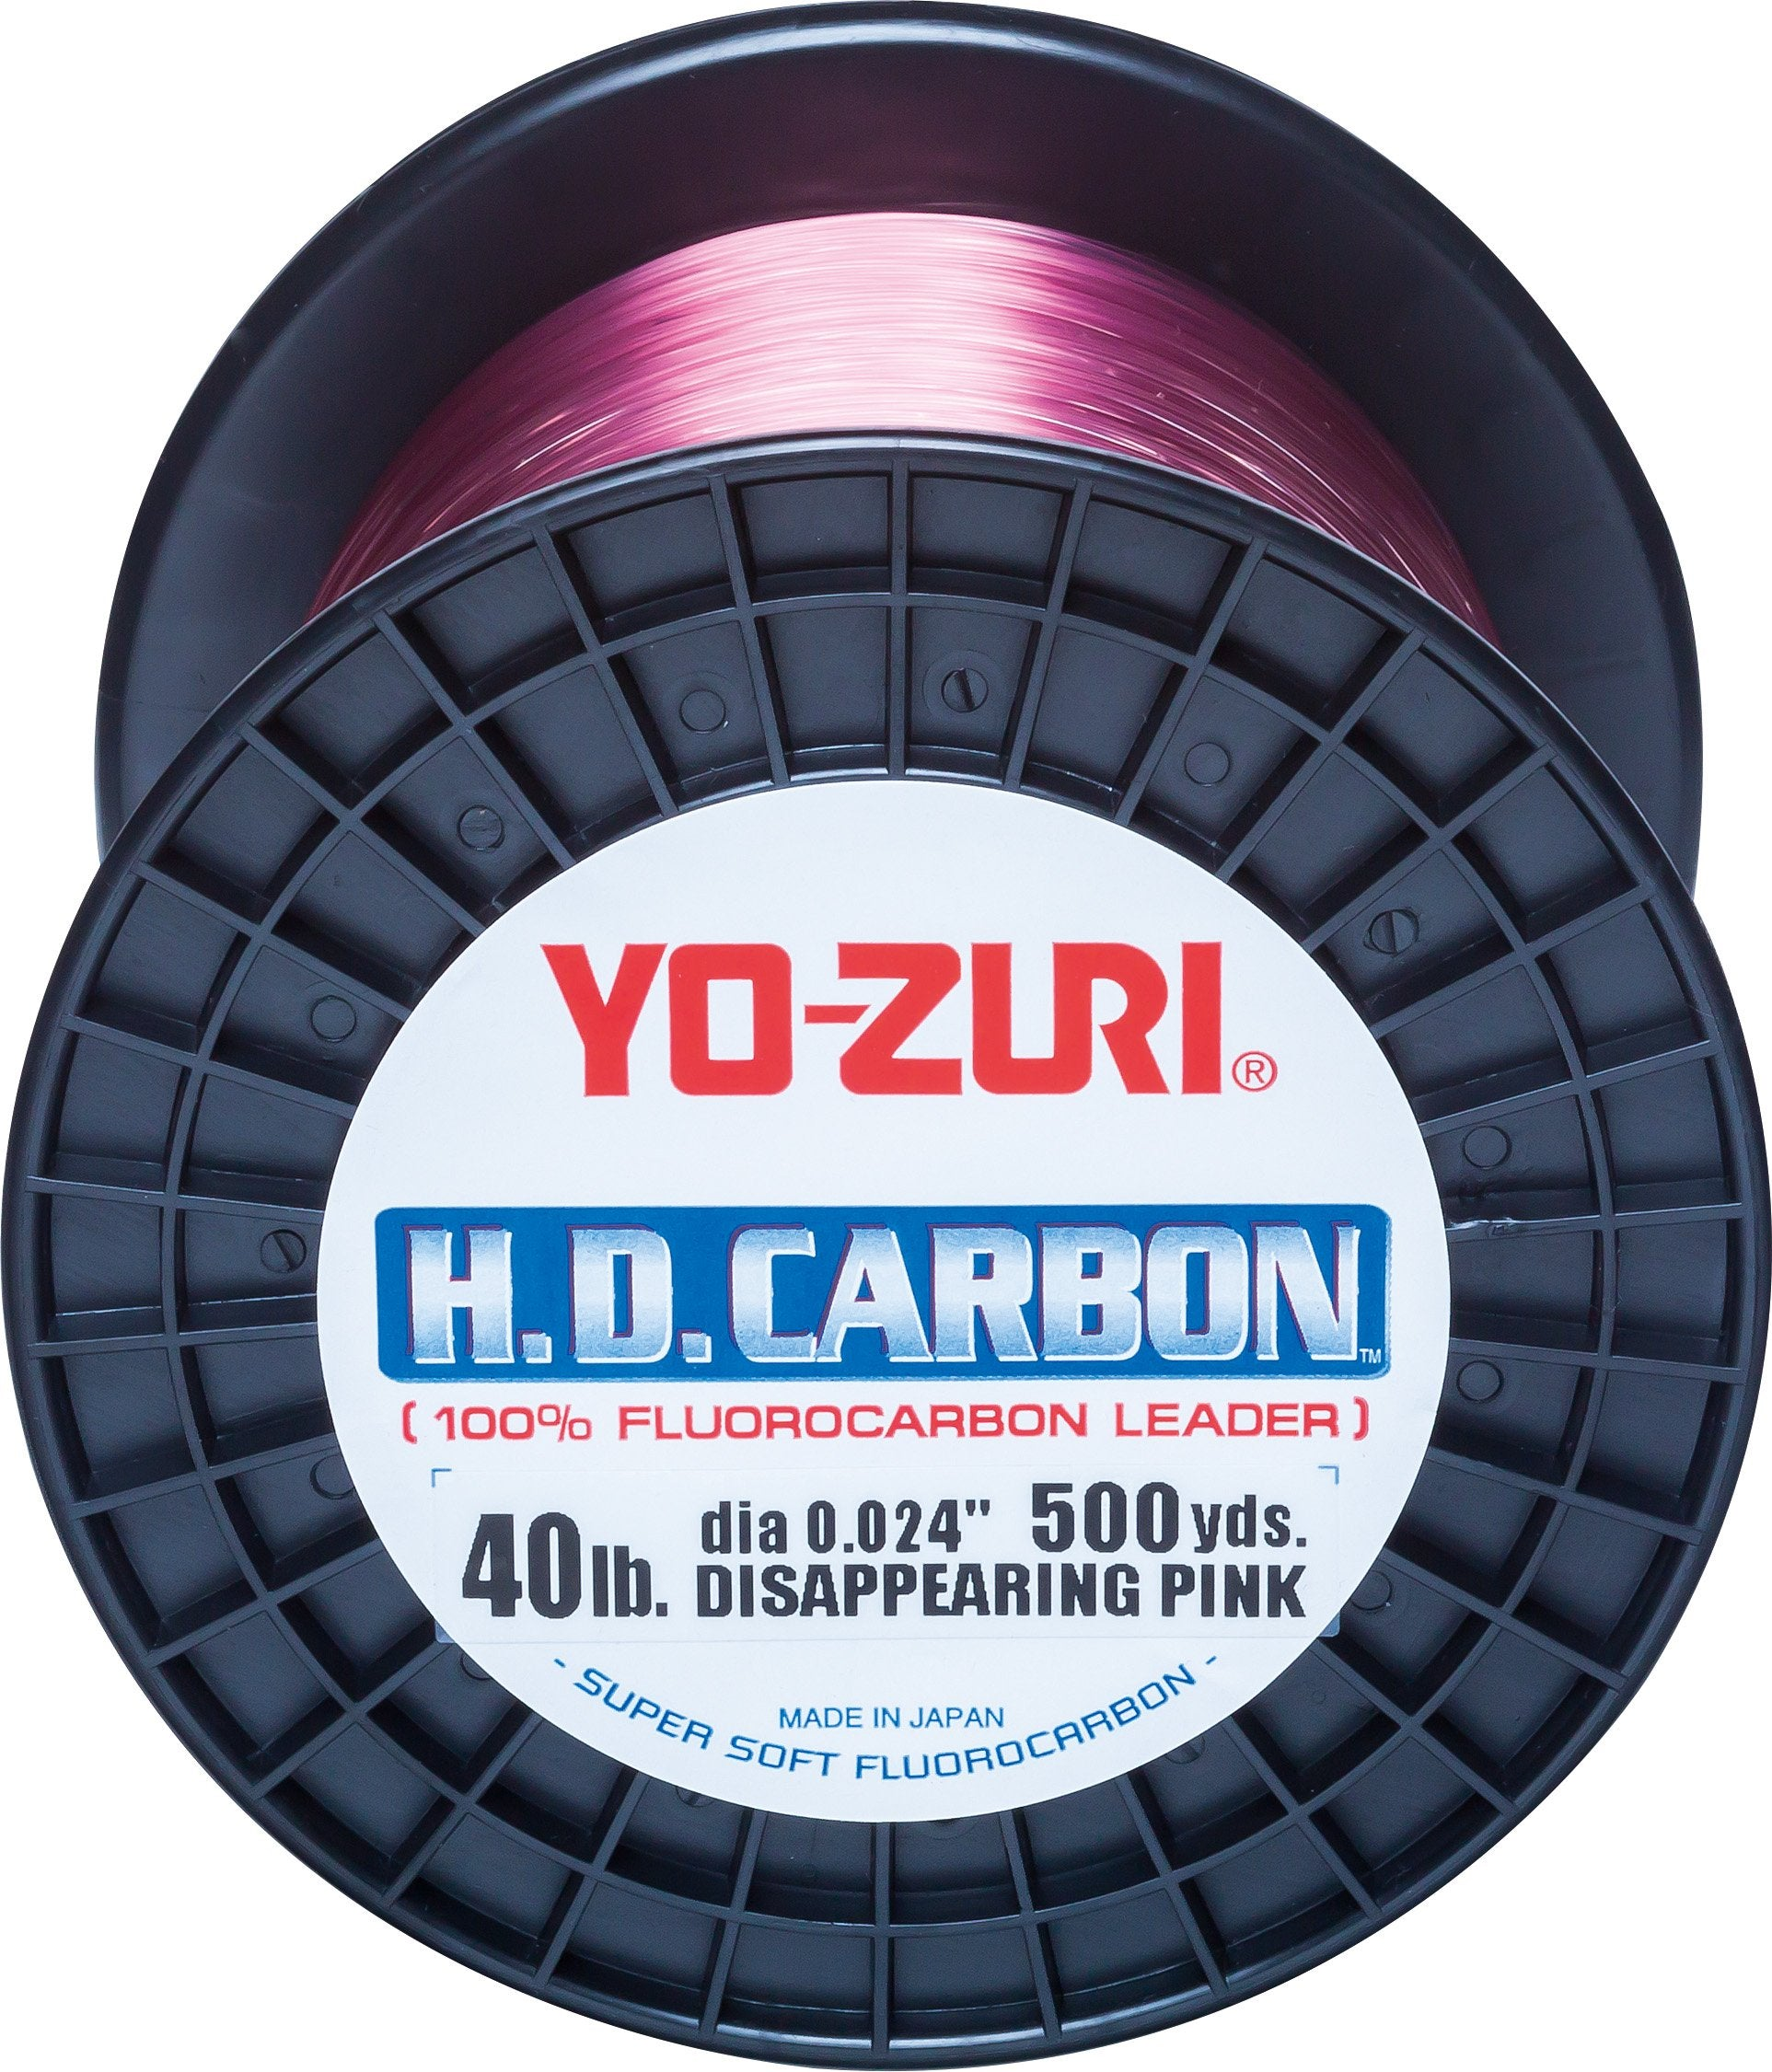 Yo-Zuri H.D.Carbon Fluorocarbon 100% Leader 500Yds 40Lbs 458M (0.602mm) Disappearing Pink